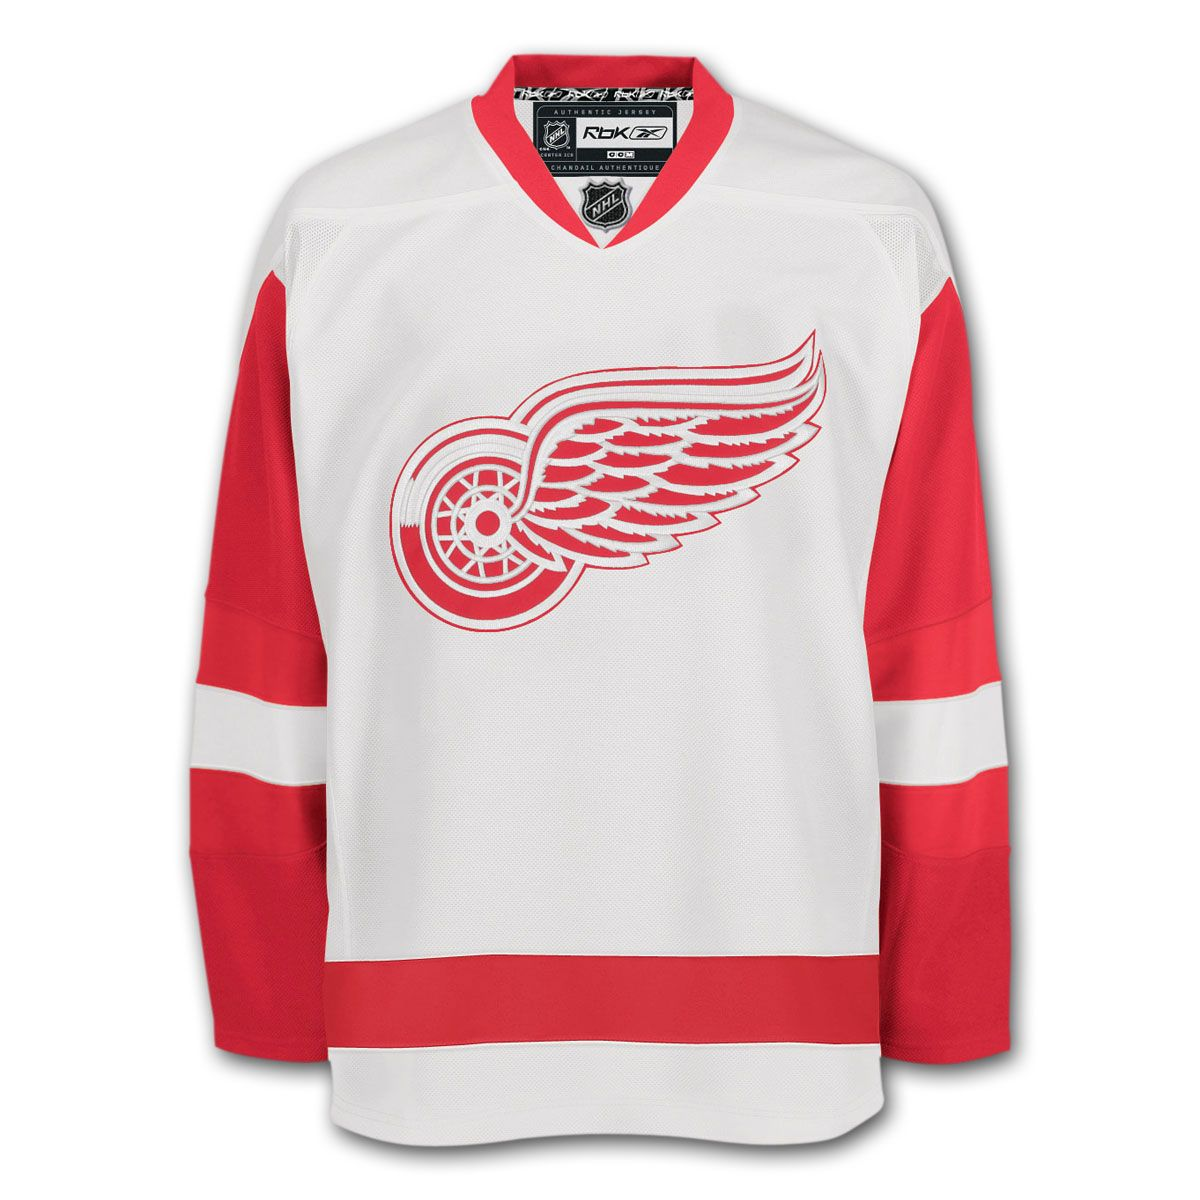 save off 6c087 18726 Detroit Red Wings Reebok EDGE Authentic Road NHL Hockey ...